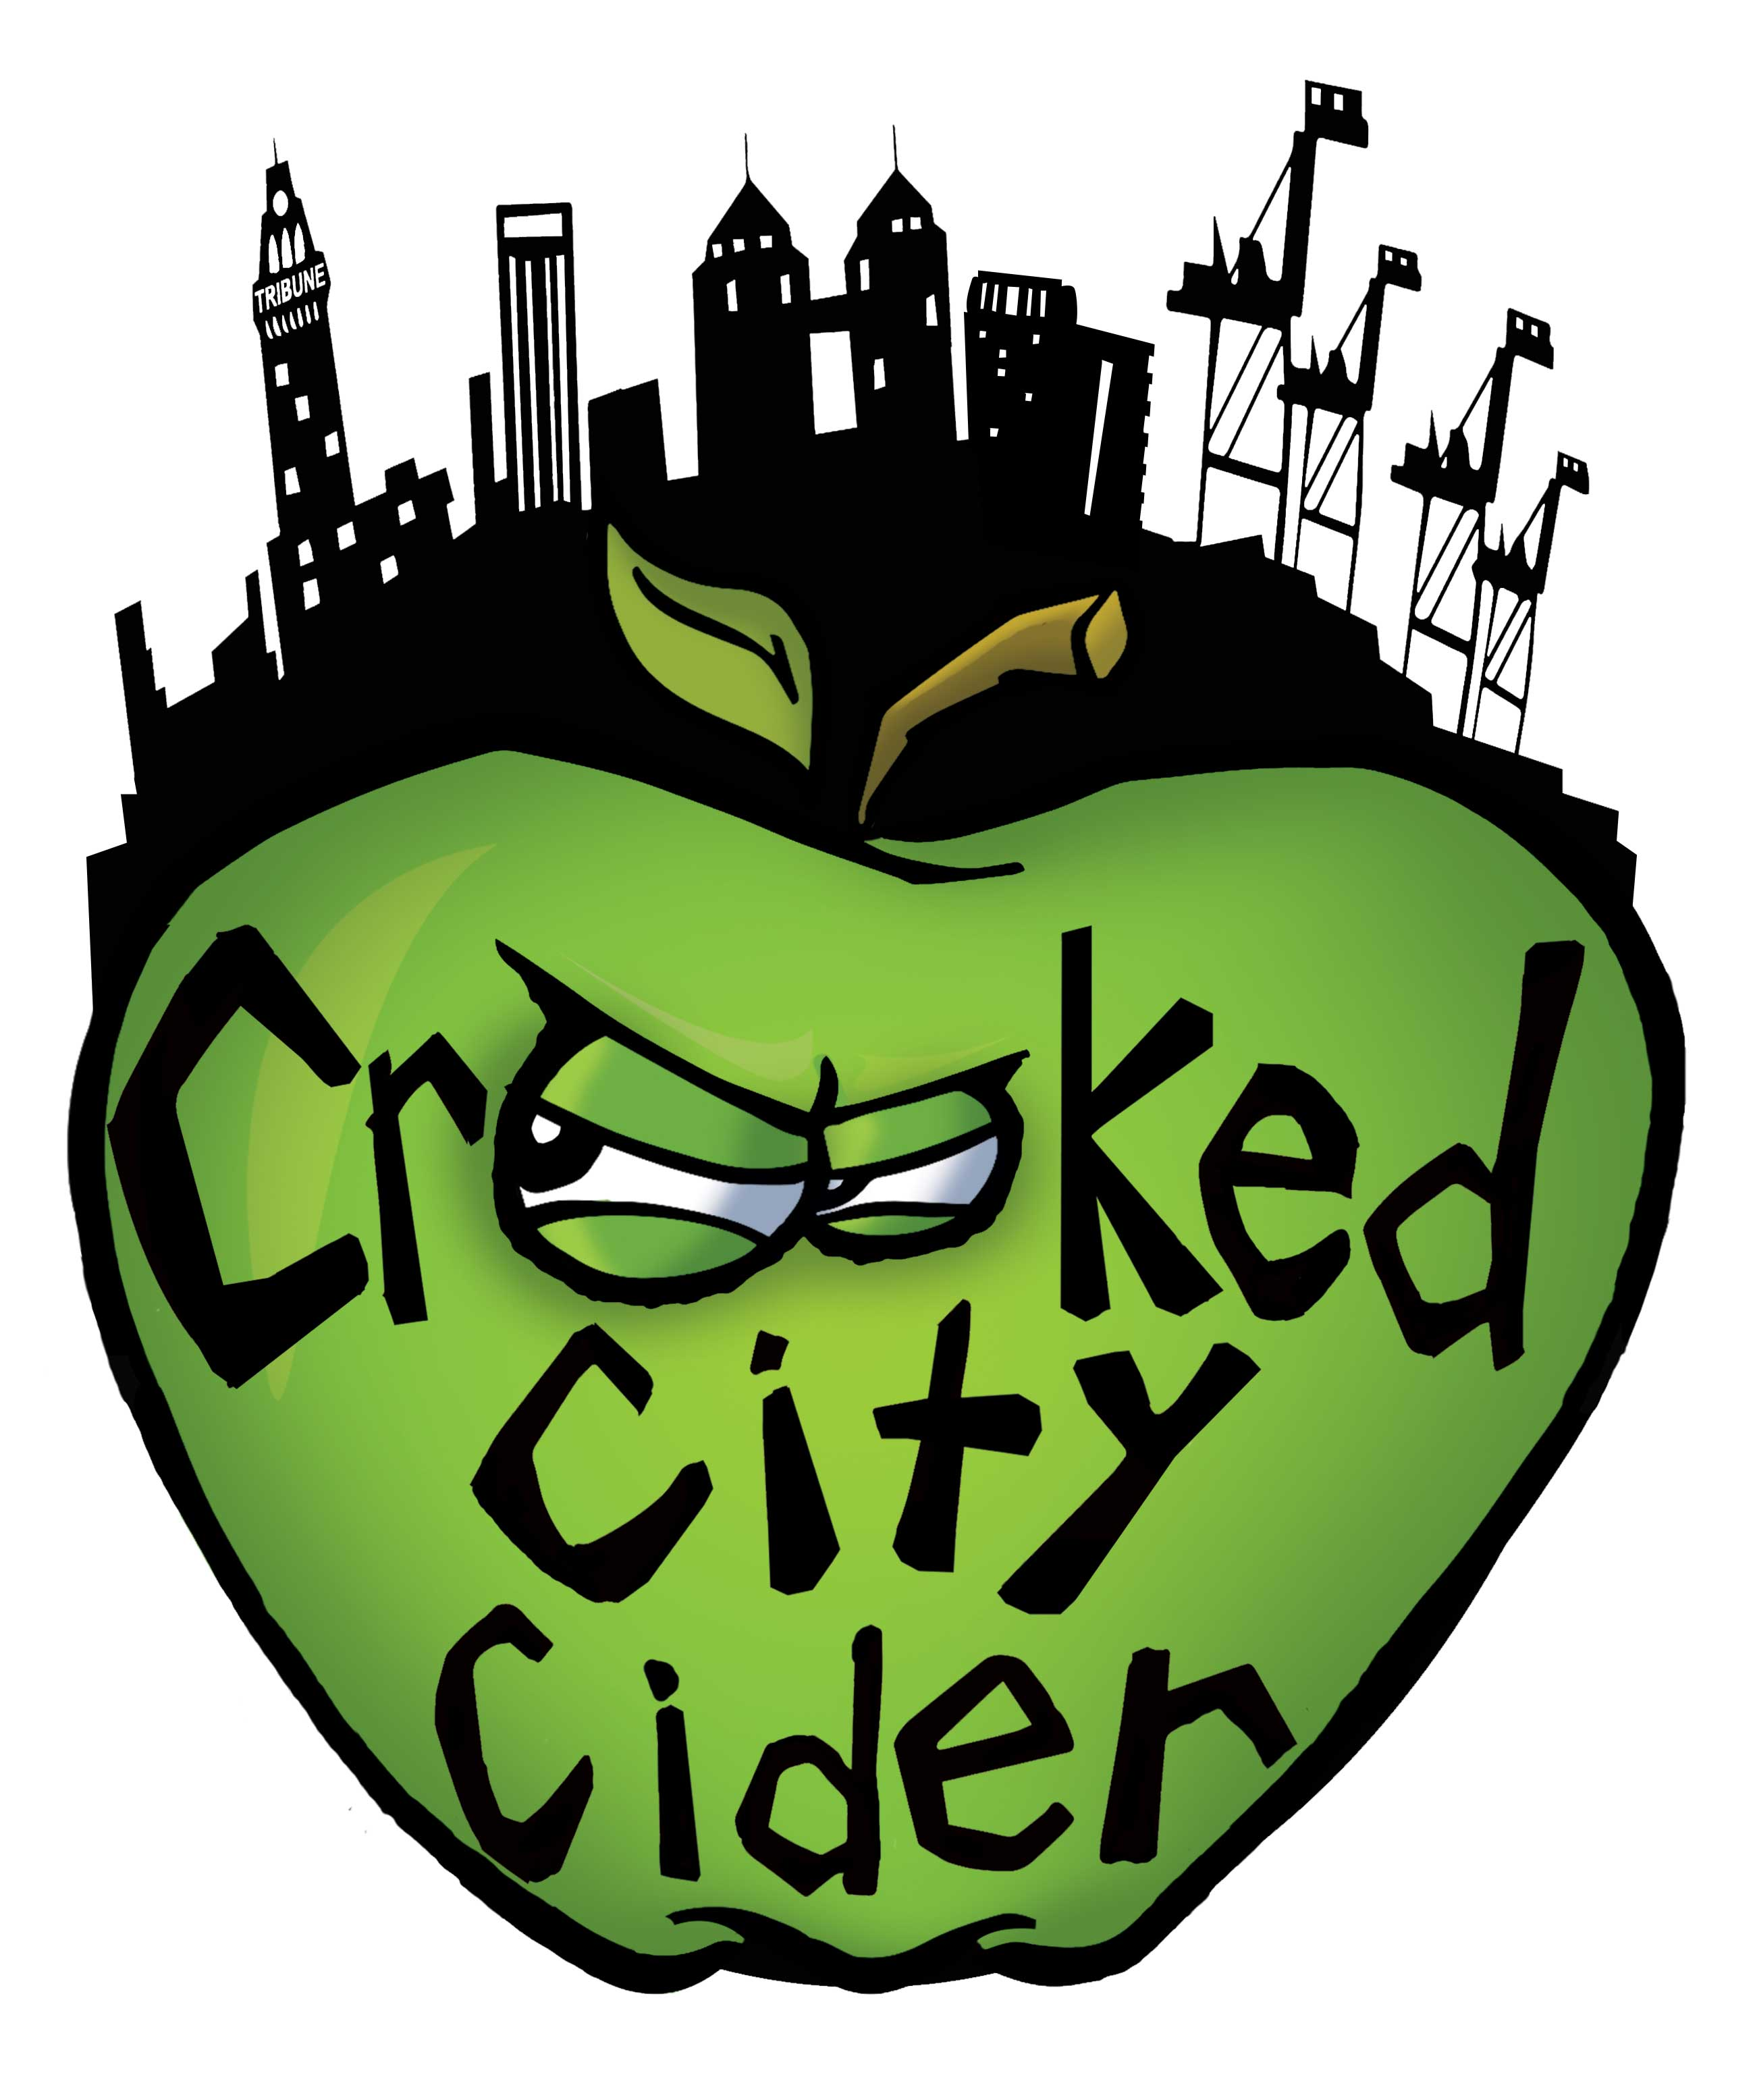 Crooked City Cider logo